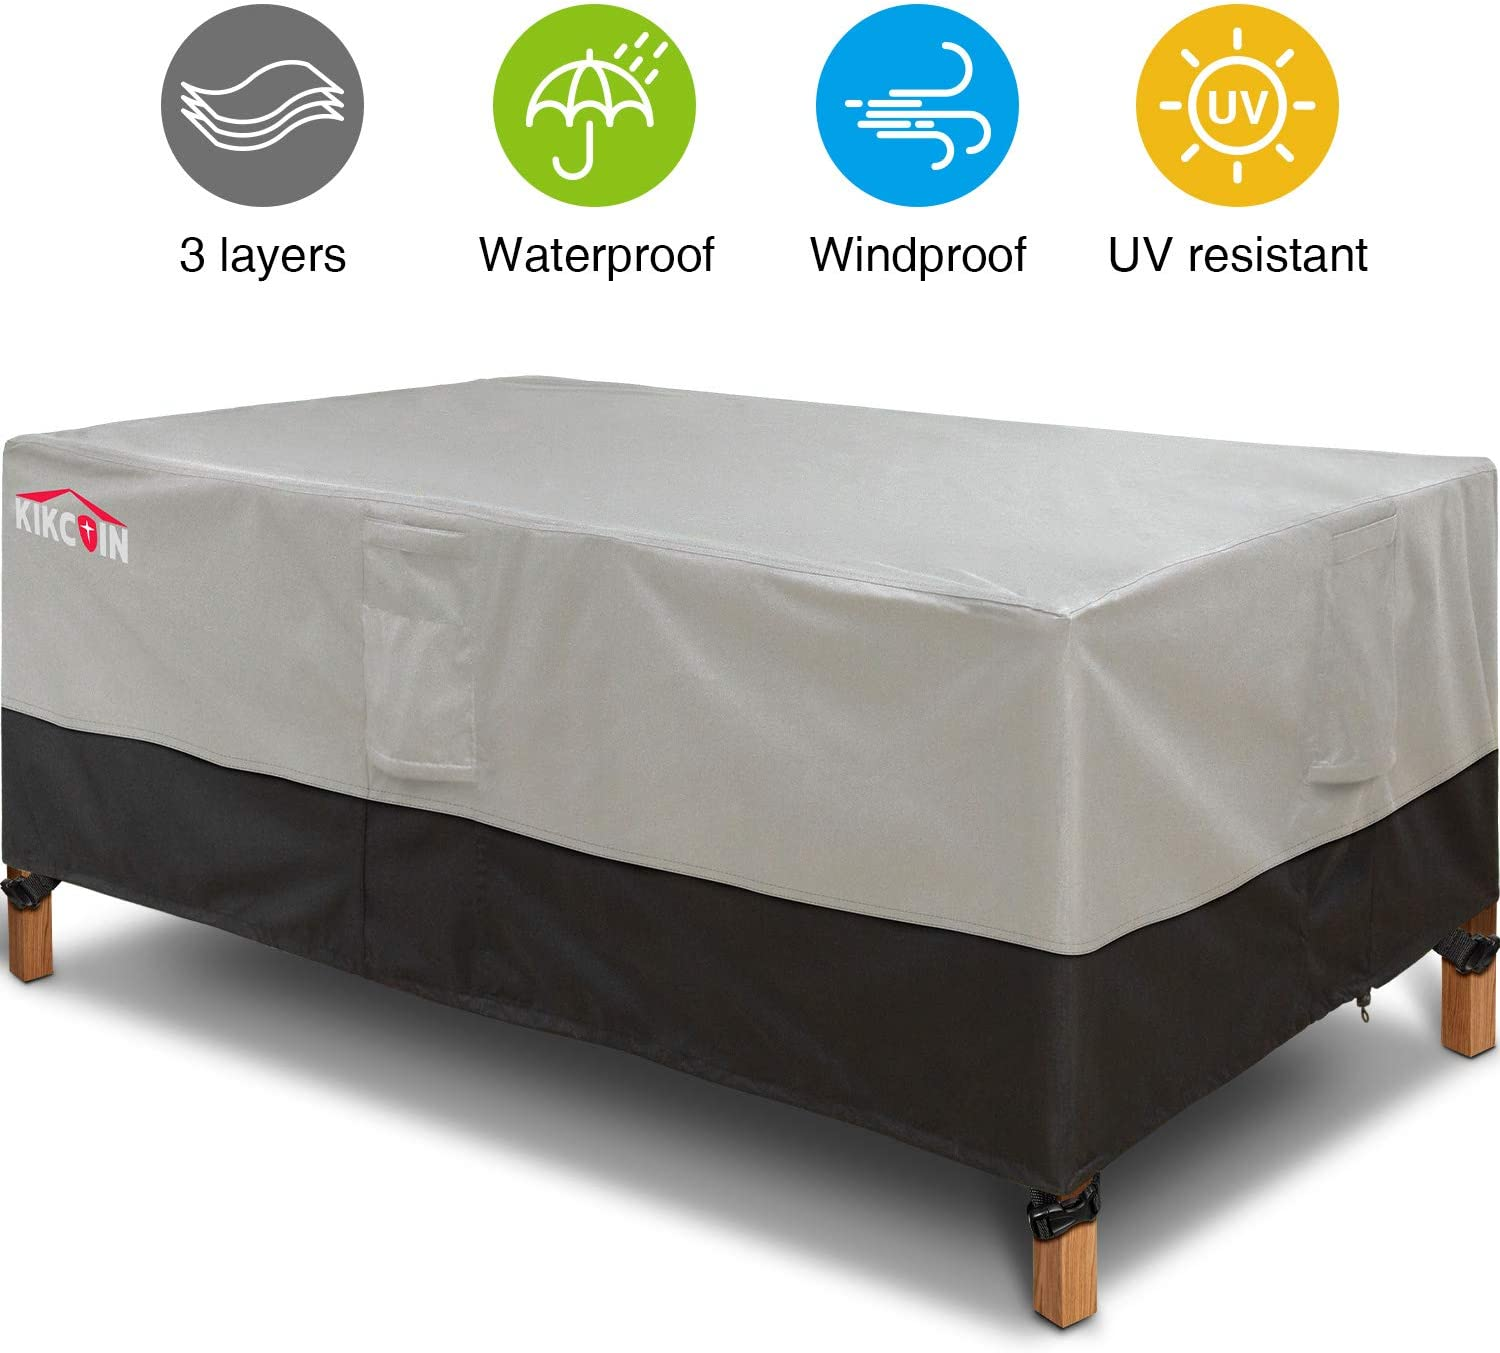 600D Extra Wide Outdoor Furniture Covers 84 Wx 44 Dx 23 H with 4 Air Vents Patio Table Cover Heavy Duty Waterproof Black and Grey Rectangular Outdoor Table Cover for All Weather